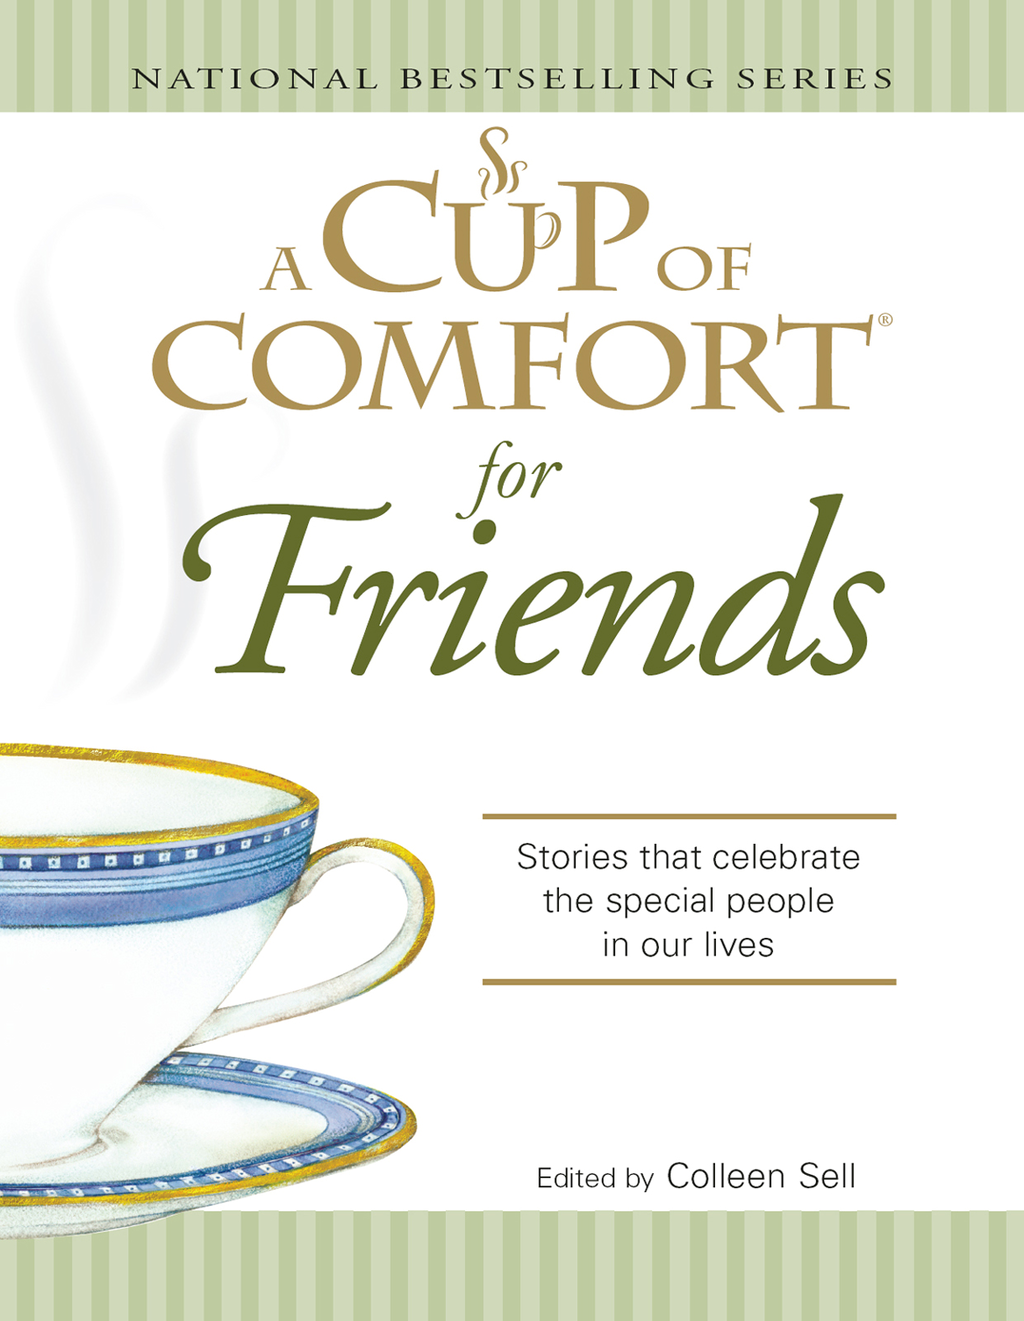 A Cup of Comfort for Friends Stories that celebrate the special people in our lives